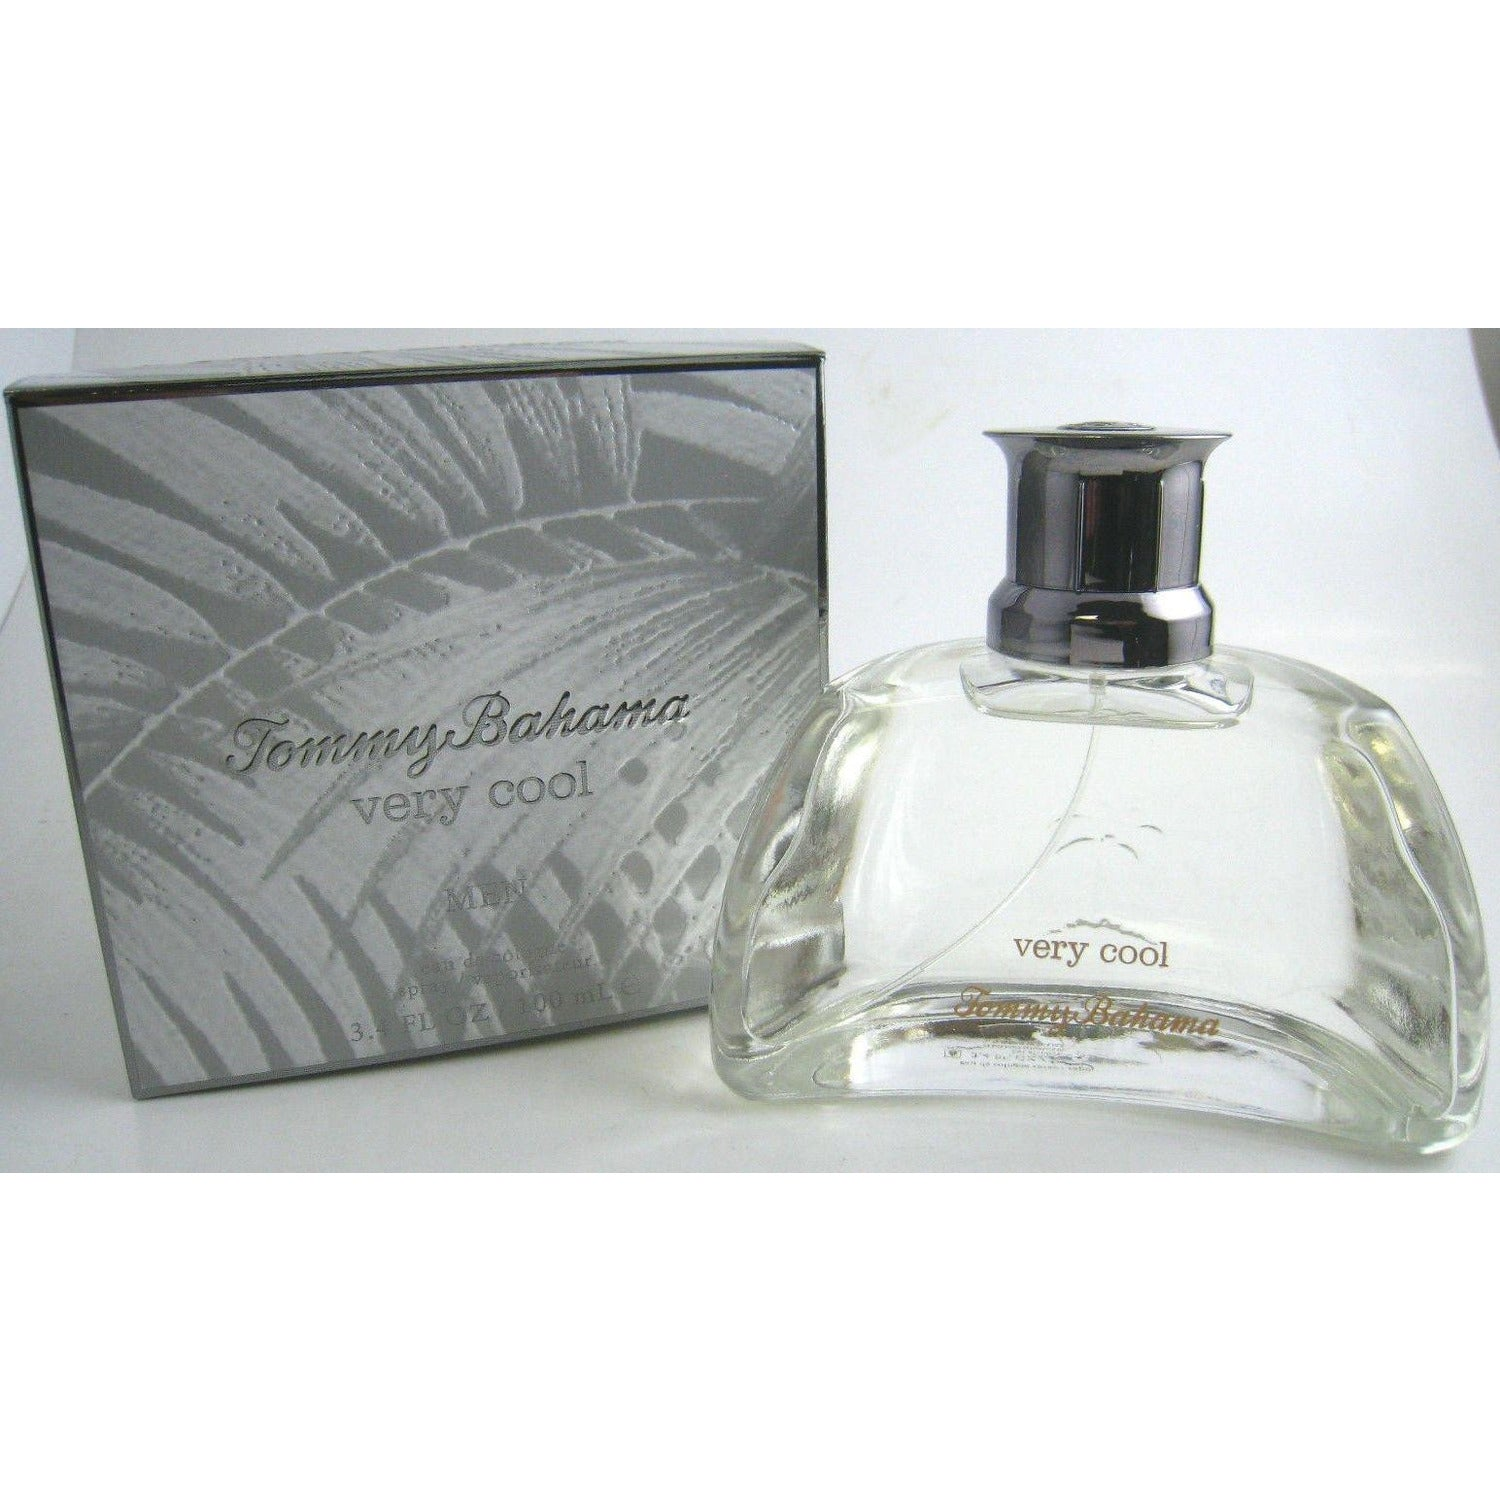 tommy-bahama-very-cool-cologne-3-4-oz-new-in-box